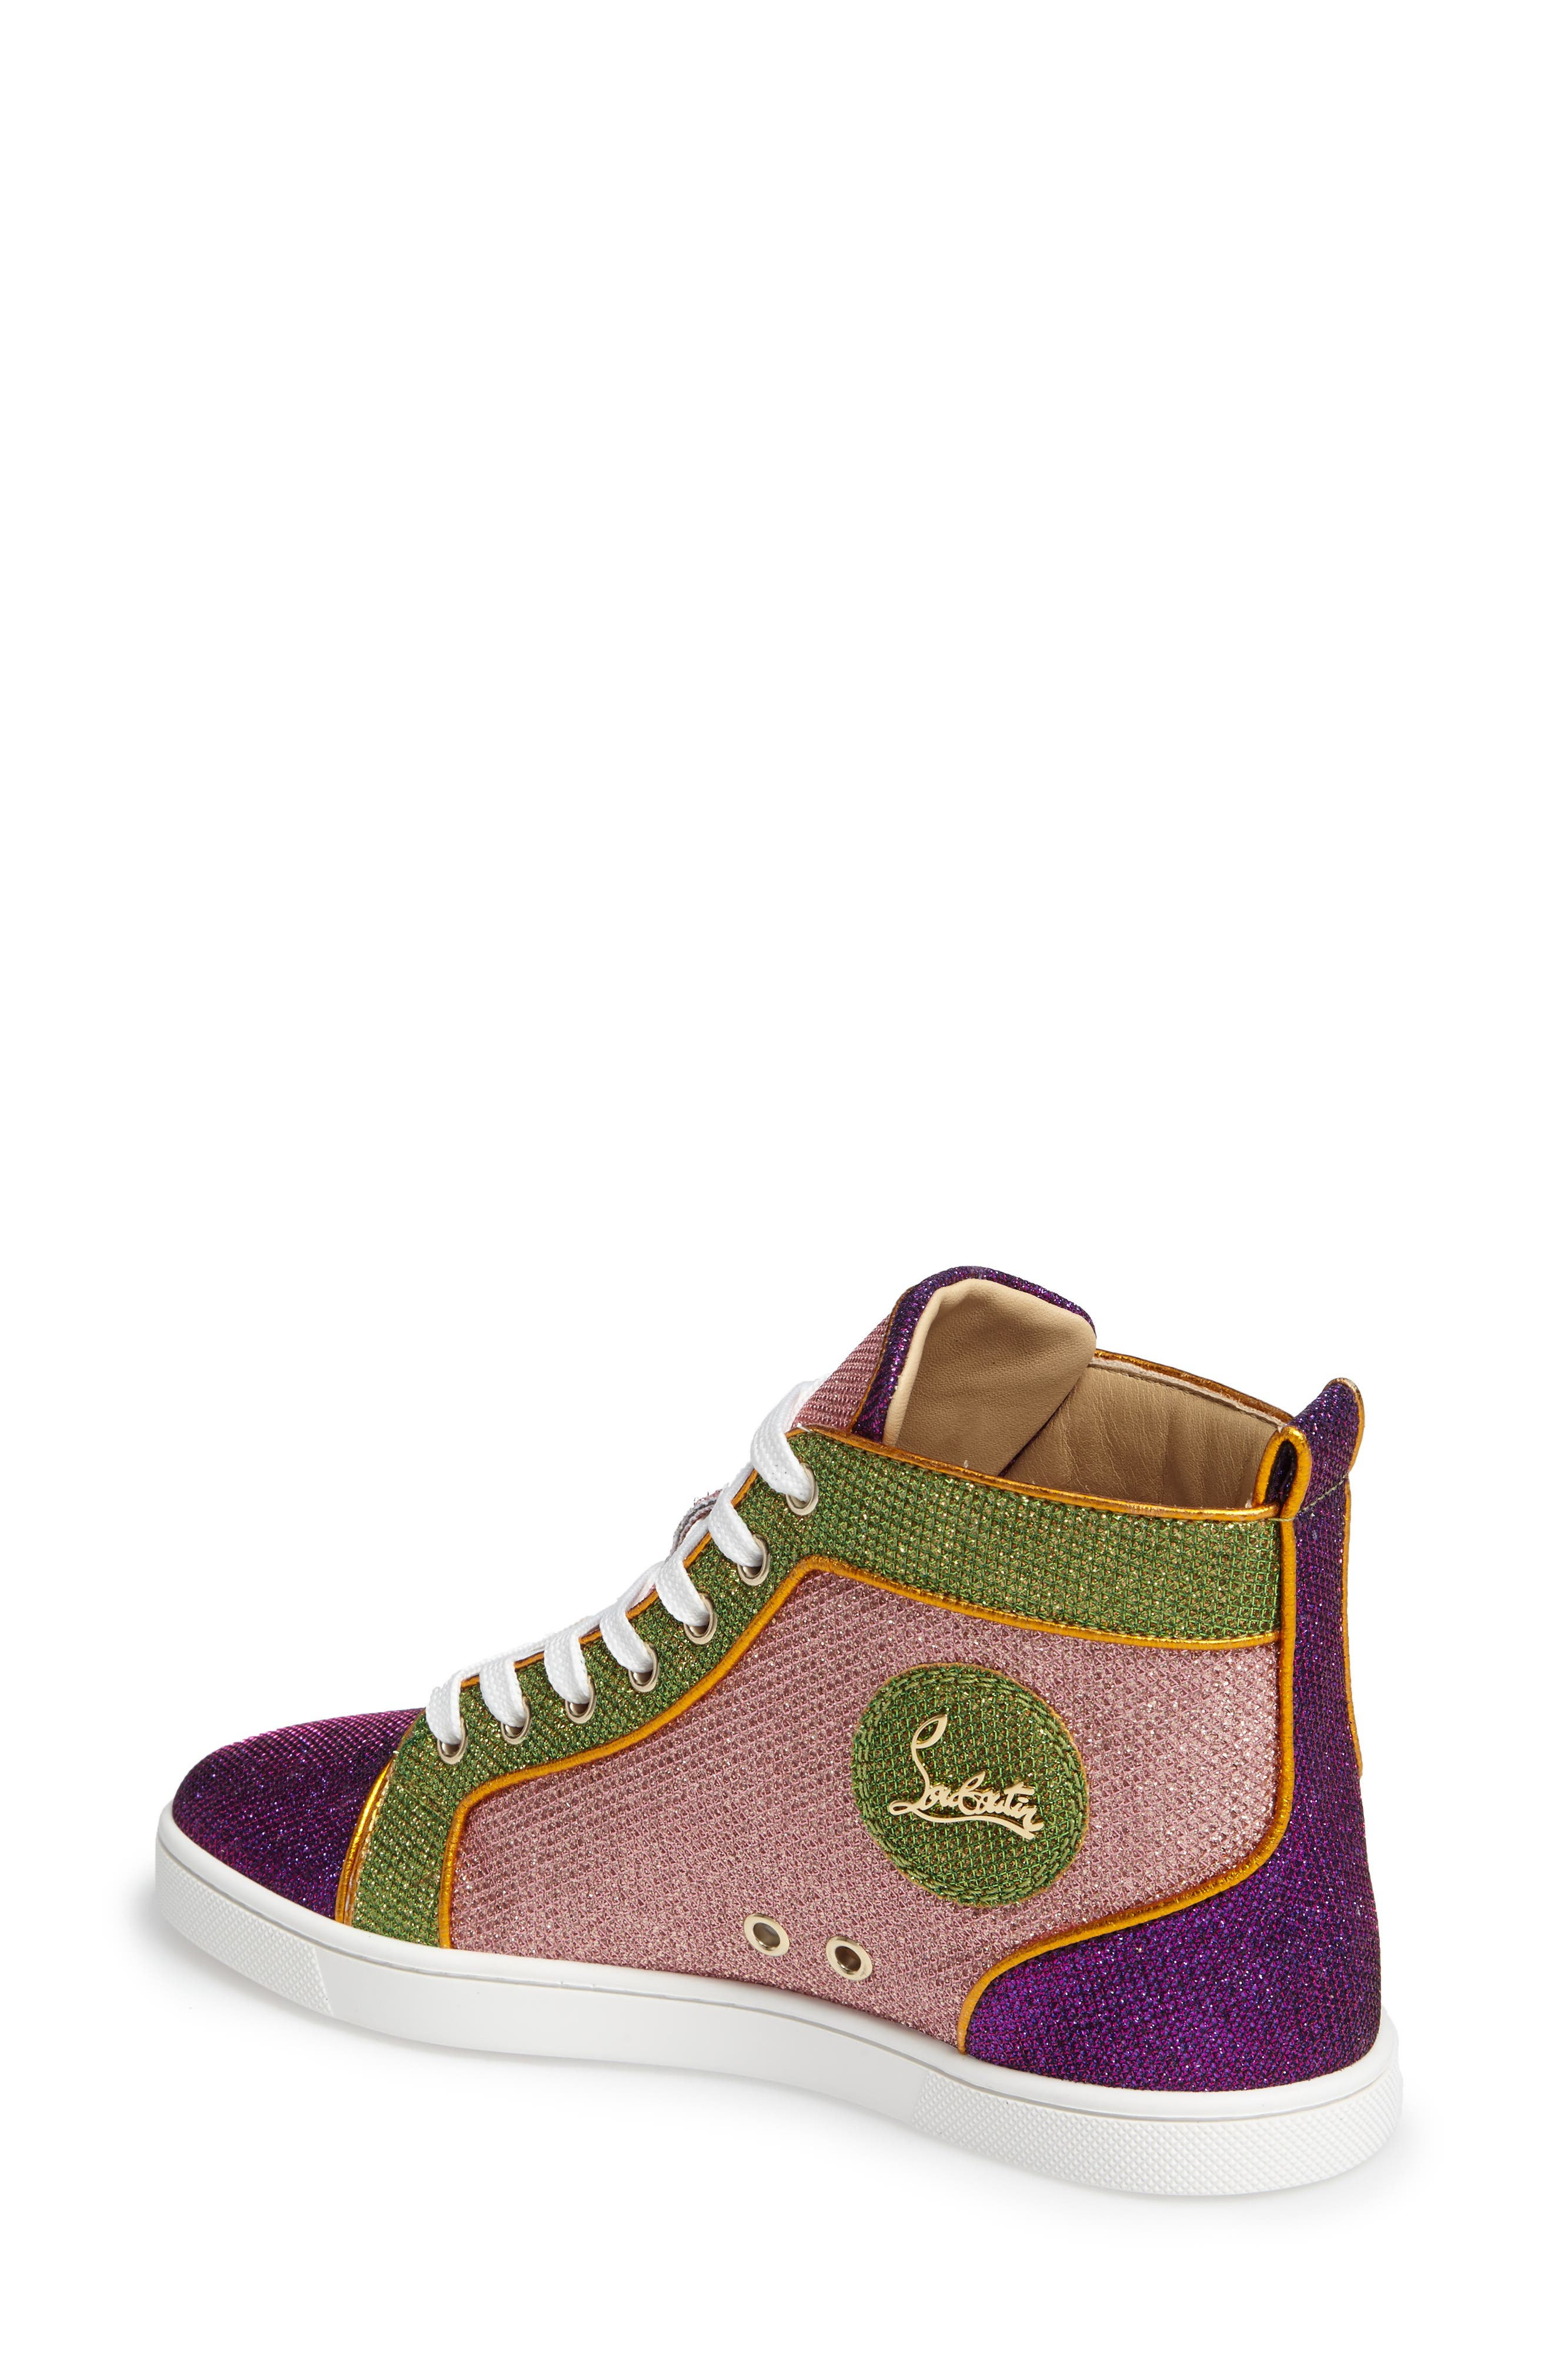 Bip Bip High Top Sneaker,                             Alternate thumbnail 6, color,